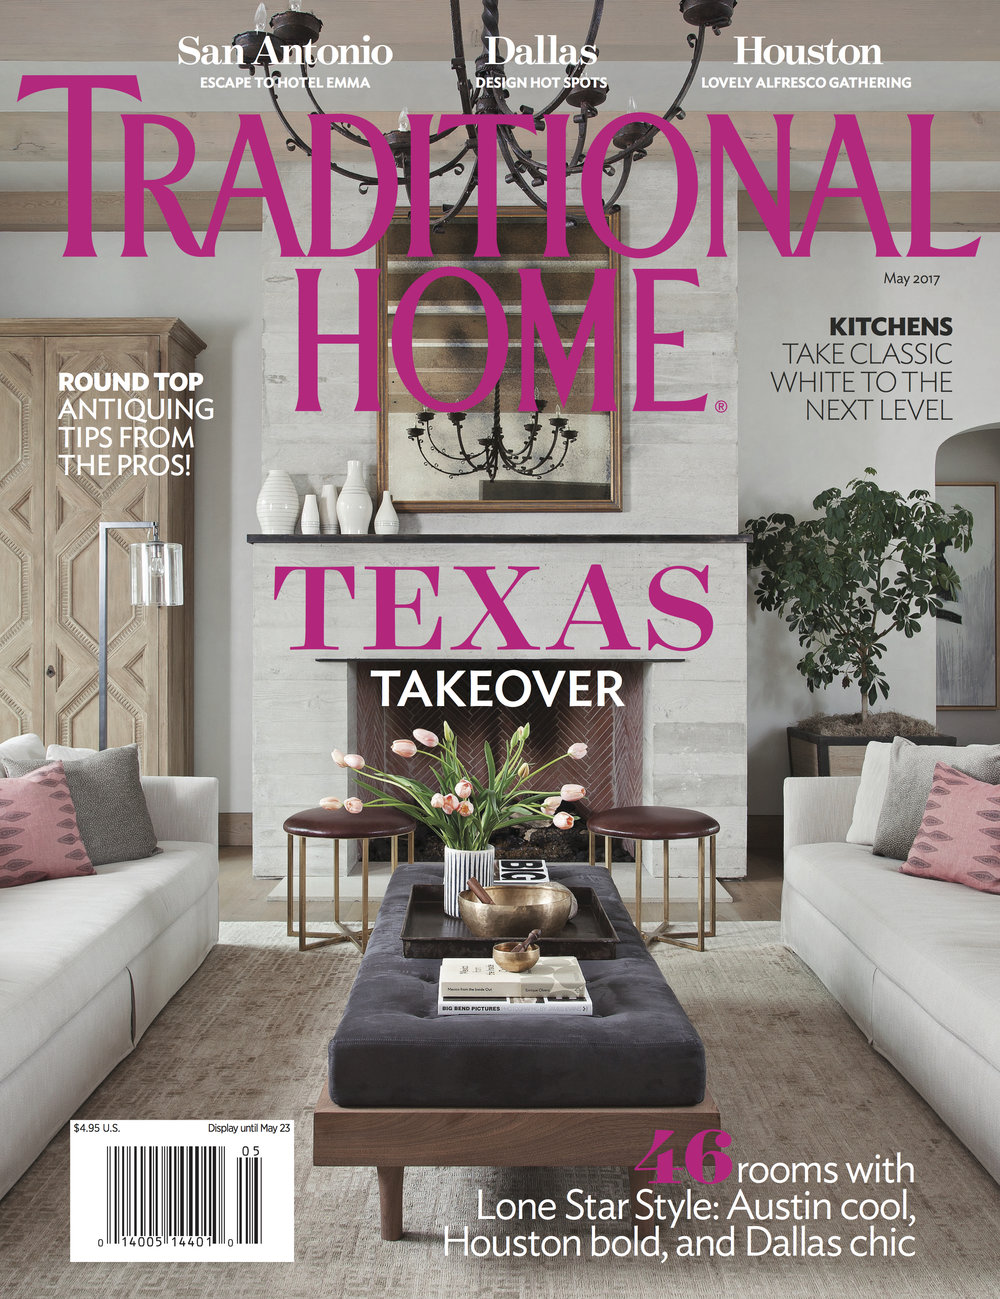 000 TraditionalHome May2017 copy.jpg